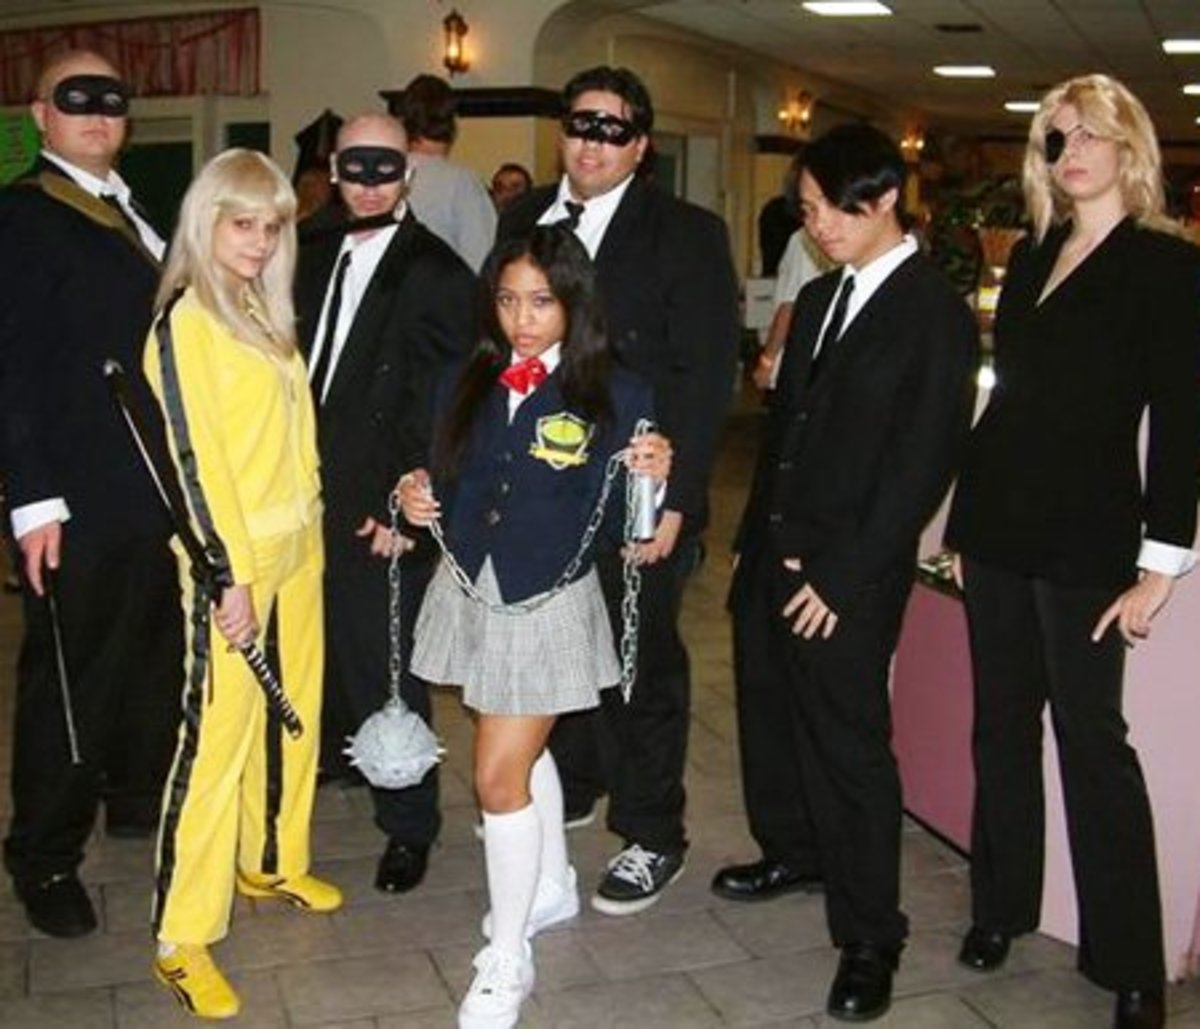 kill bill group costume 101 halloween costume ideas for women - Halloween Costume Idea Women